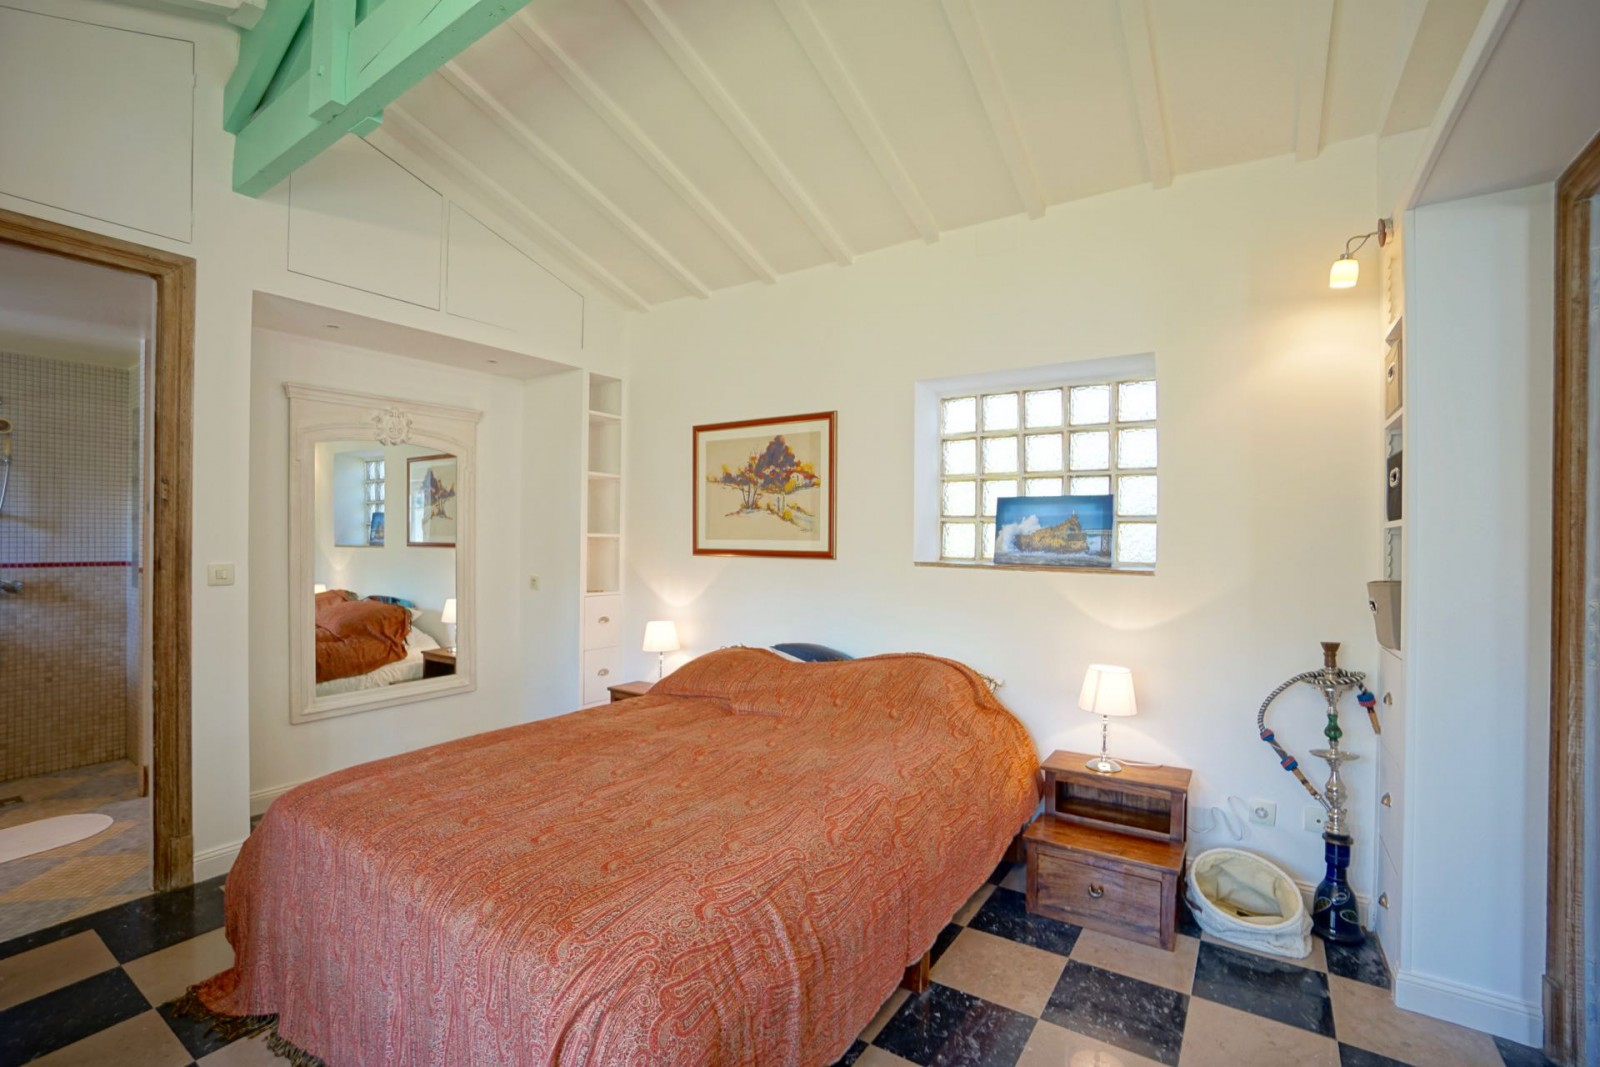 Chambre D'amour Vin Blanc Prix Best Villa Chambre D Amour Ideas Awesome Interior Home